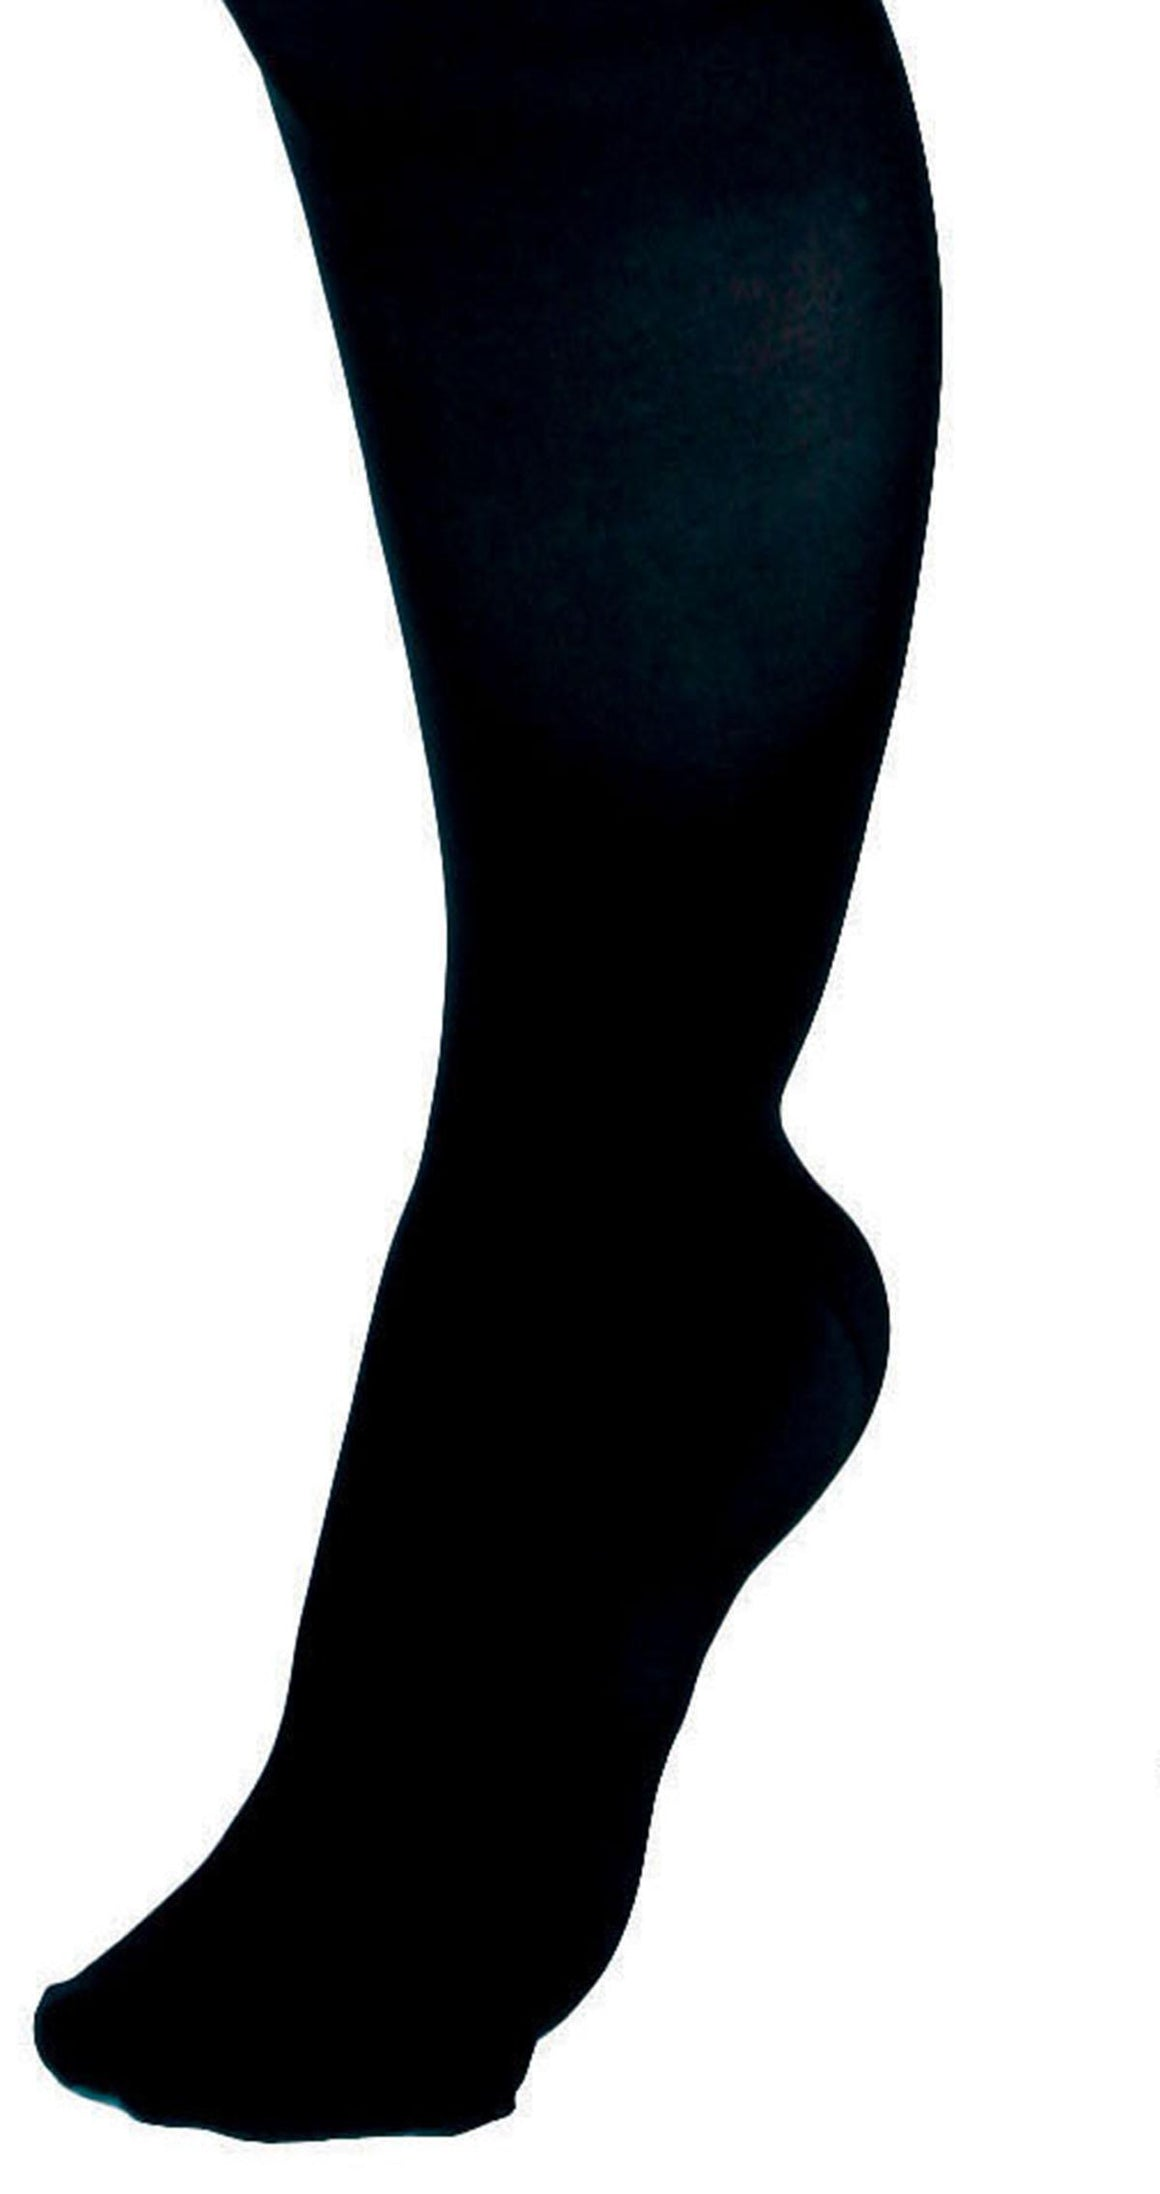 CURAD Knee-High Compression Hosiery, Black, E, Regular, Each